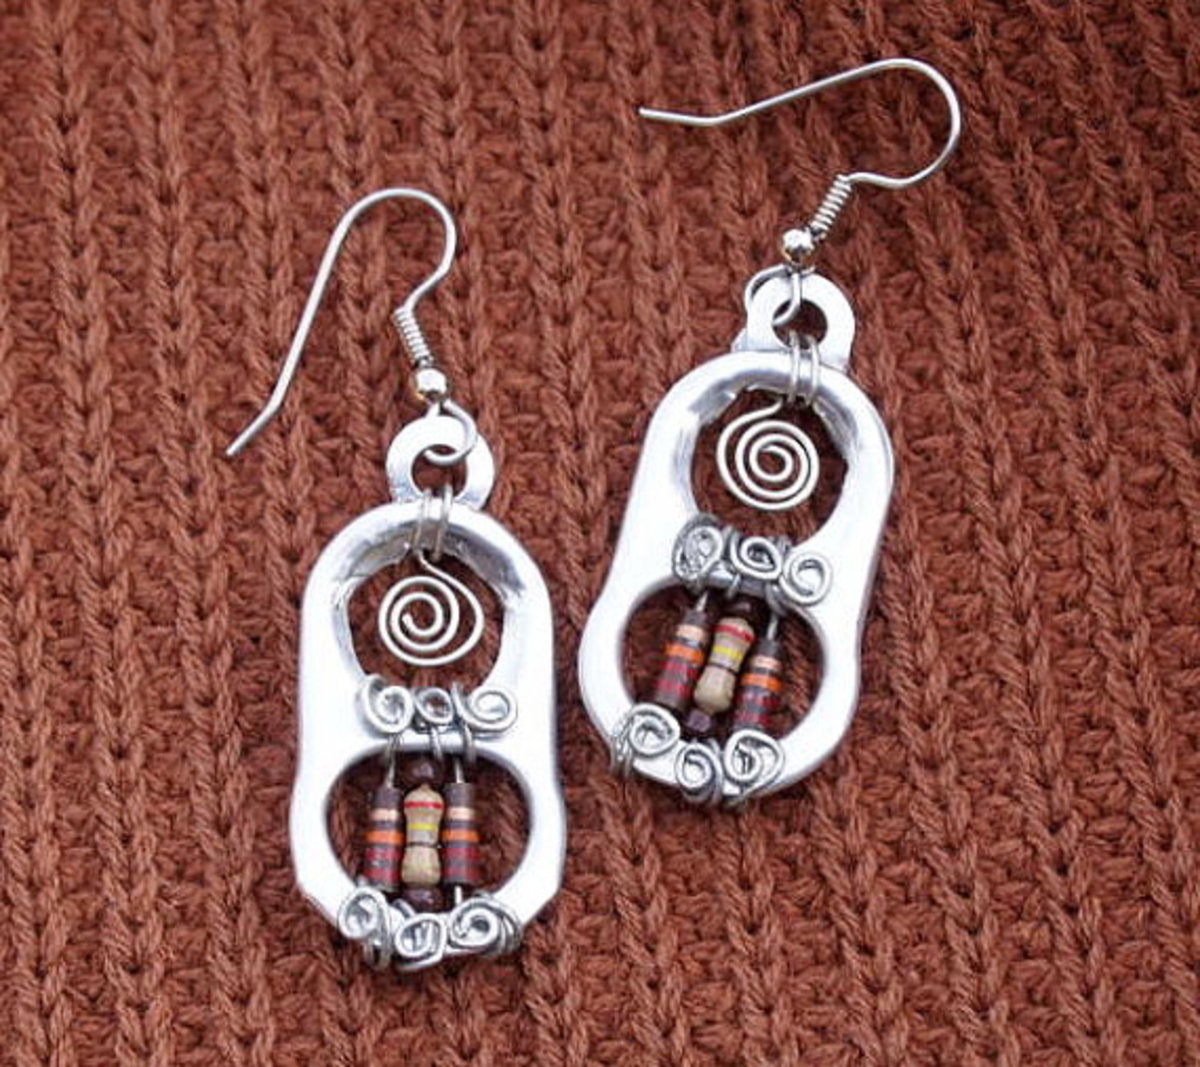 Upcycled Earrings, Silver Pull Tabs with Brown and Beige Resistors